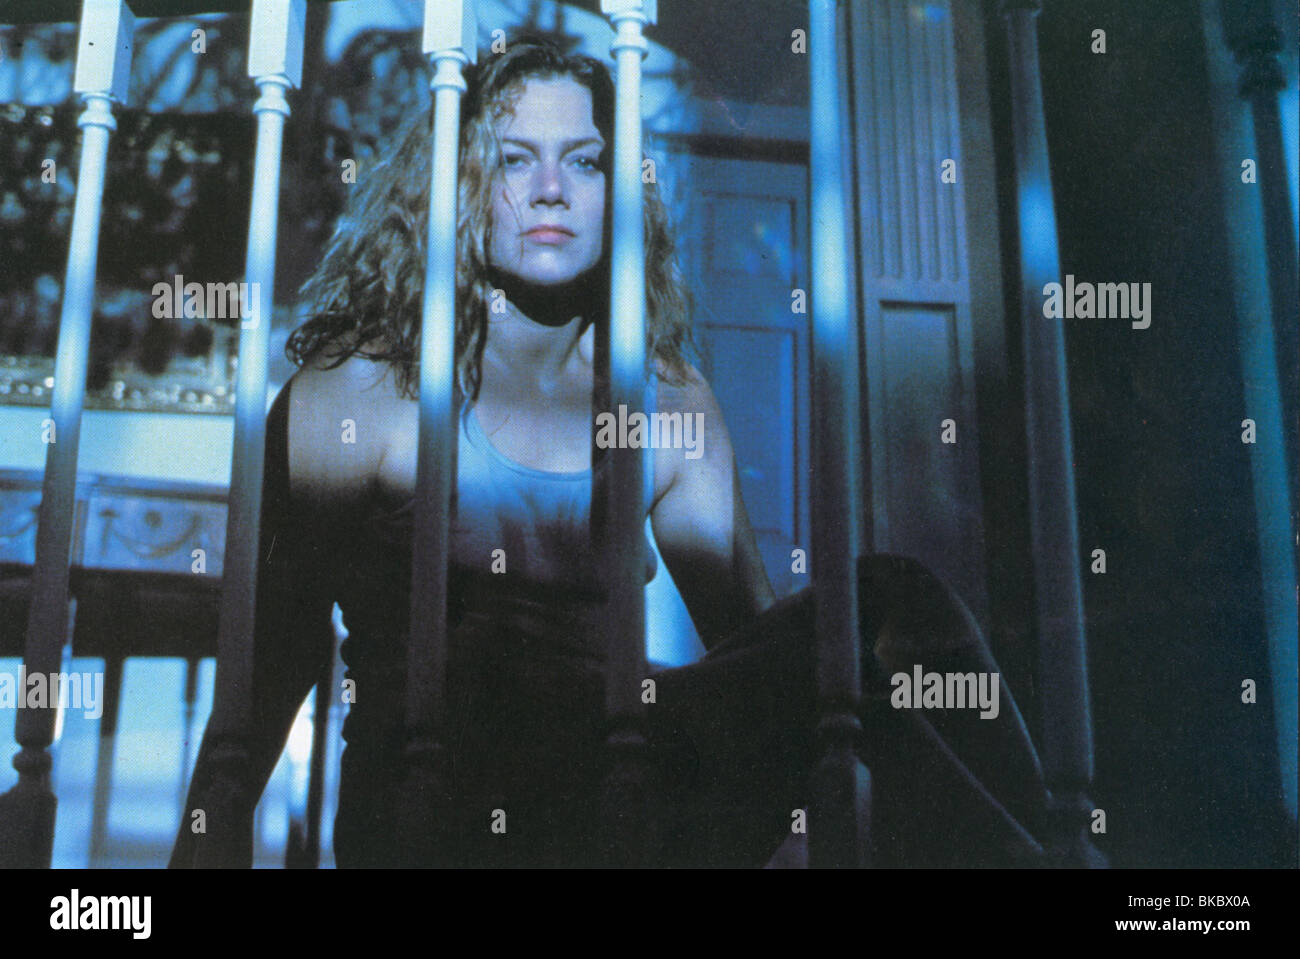 THE WAR OF THE ROSES (1989) KATHLEEN TURNER WOR 005FOH - Stock Image